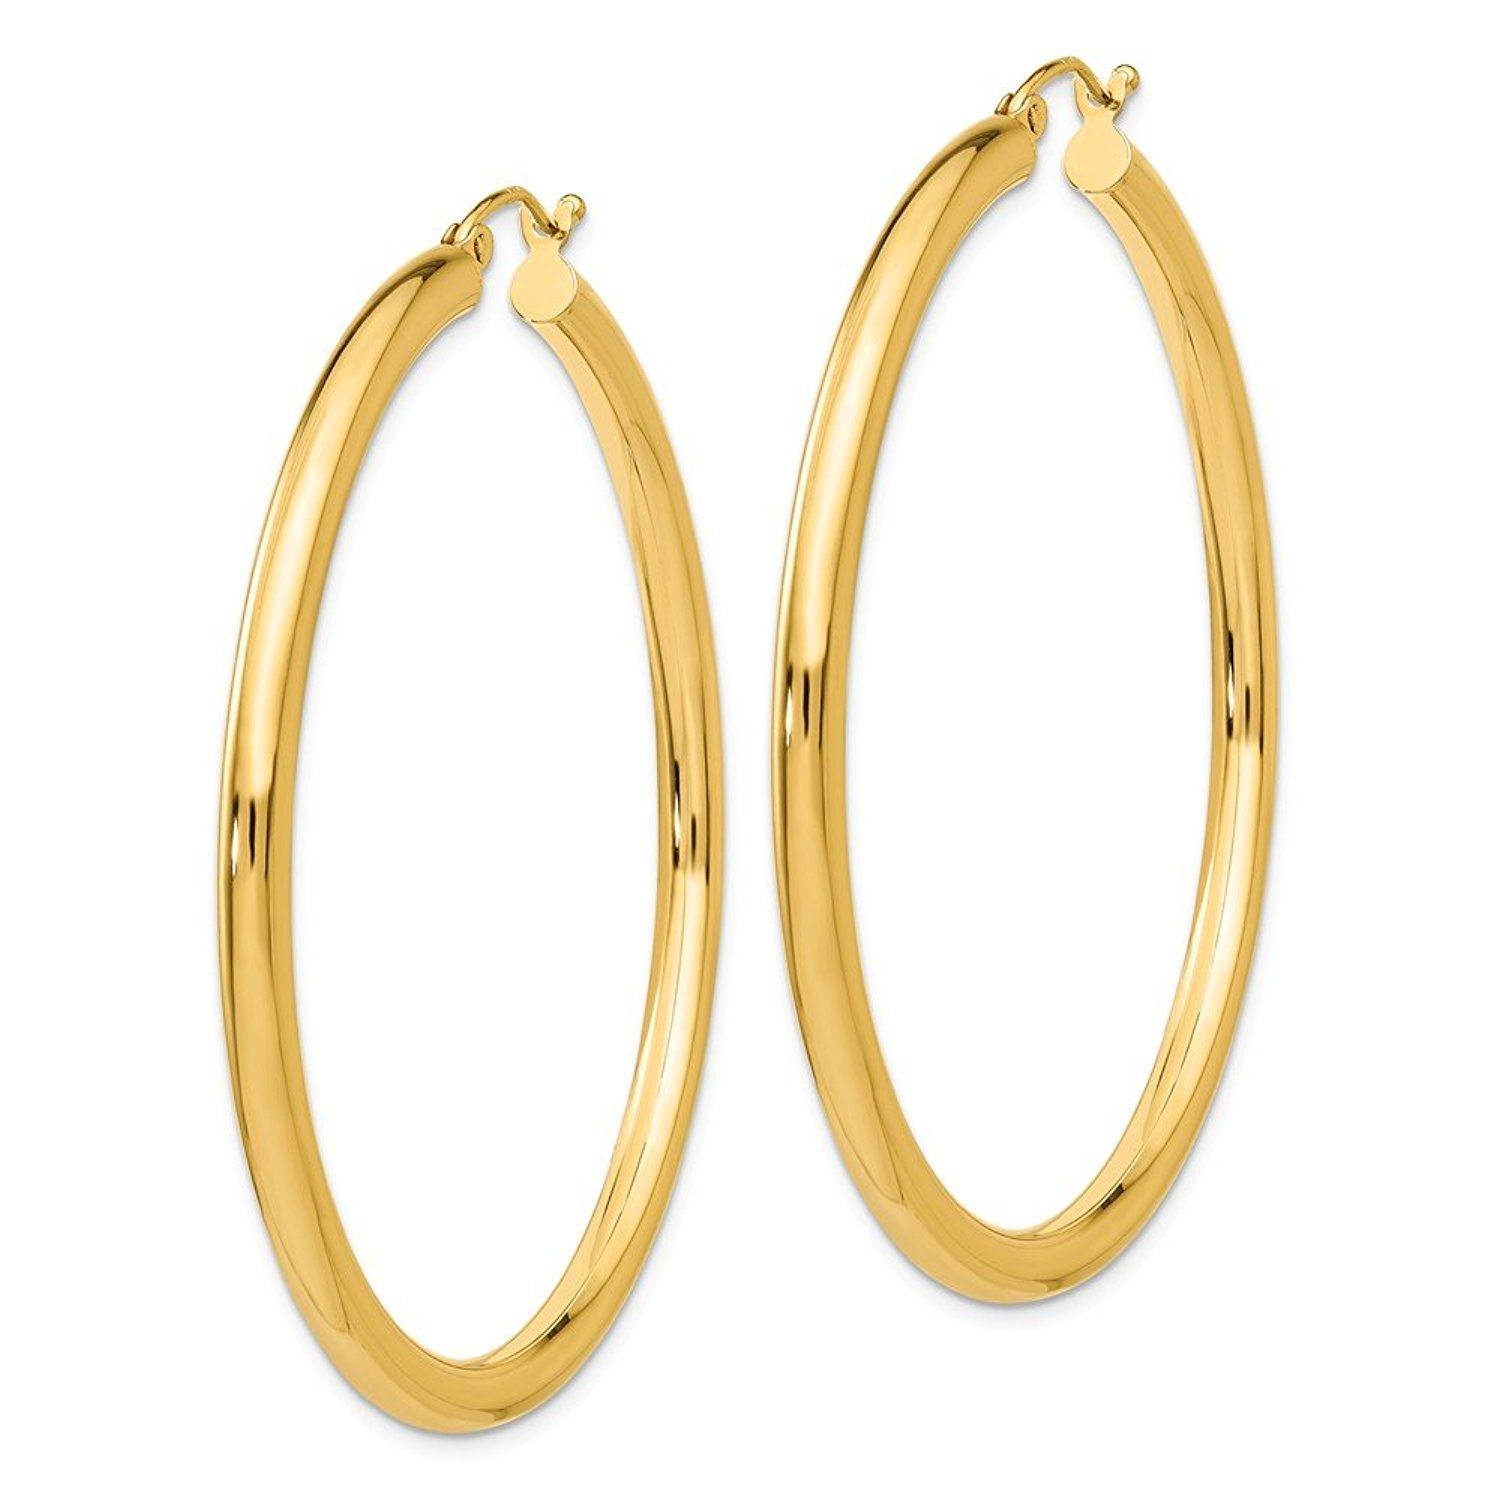 MCS Jewelry 14 Karat Yellow Gold Round Hoop Earrings 3mm Thickness (Available in 5 Different Sizes) (50 mm Diameter)